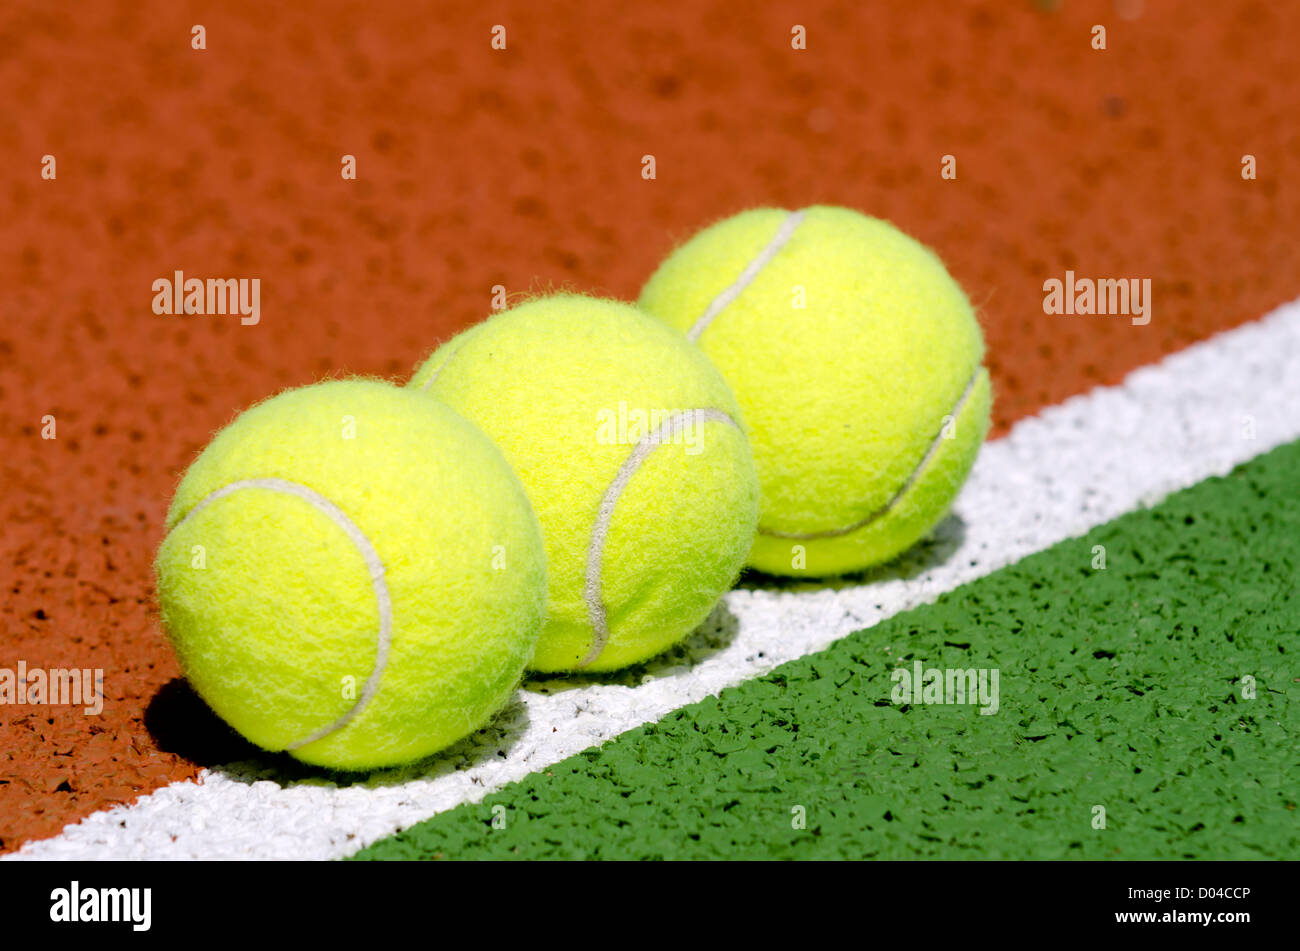 Tennis balls on a tennis court. - Stock Image